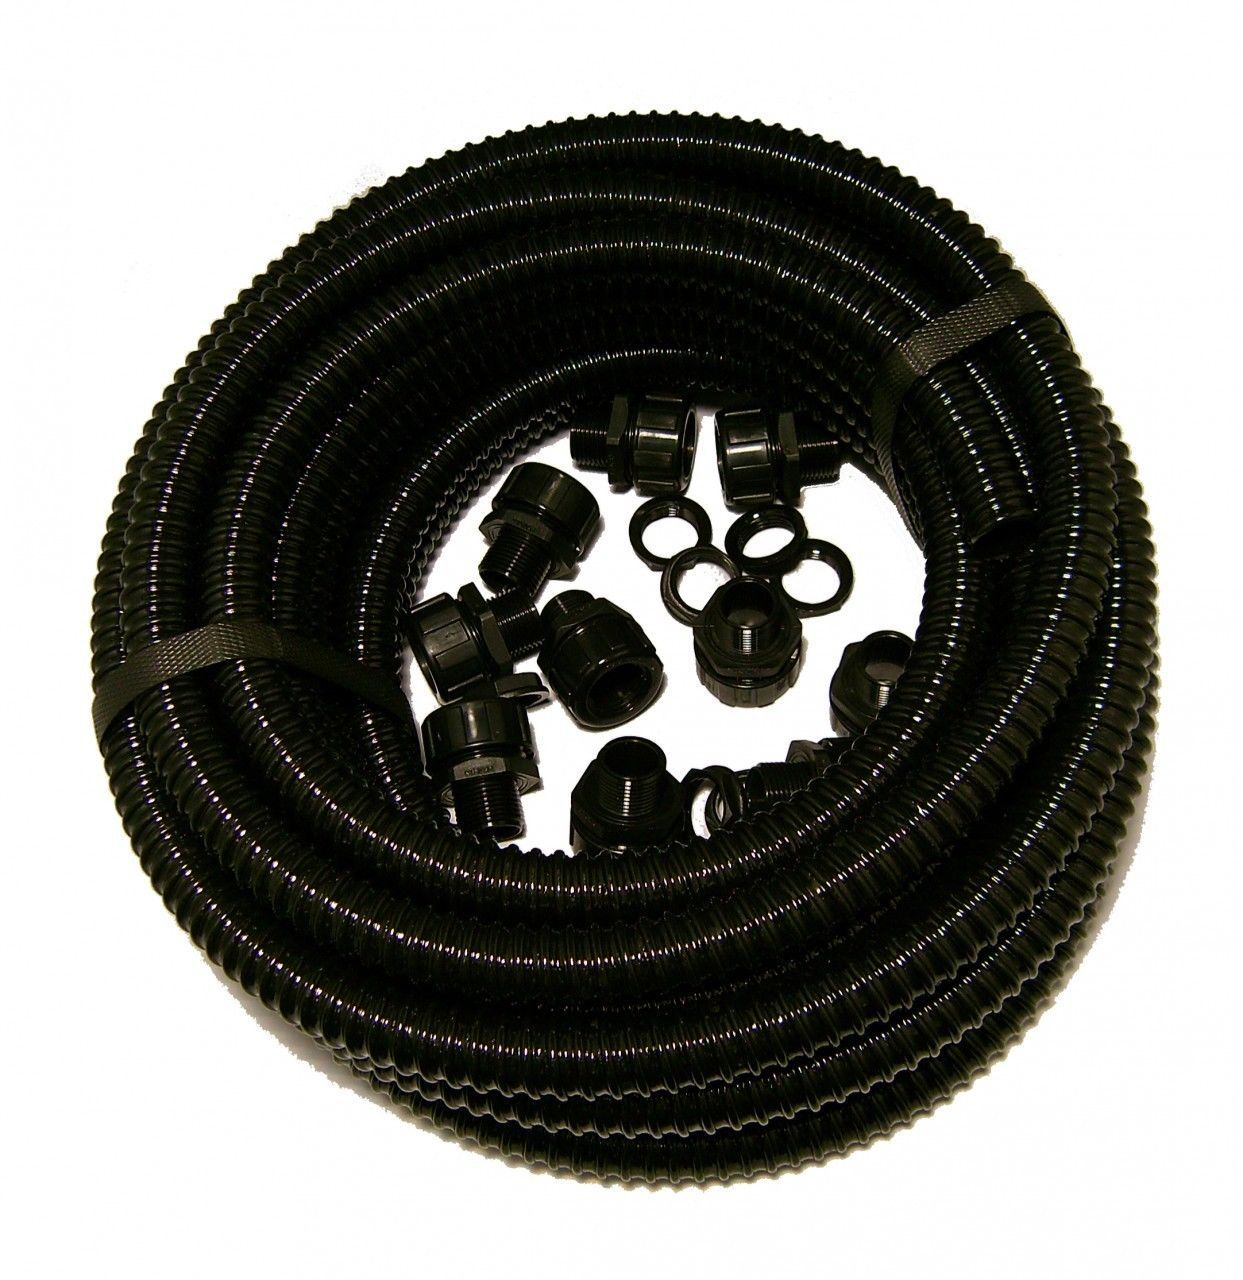 20mm Flexible Conduit Contractor Pack With Glands 10 Mtrs